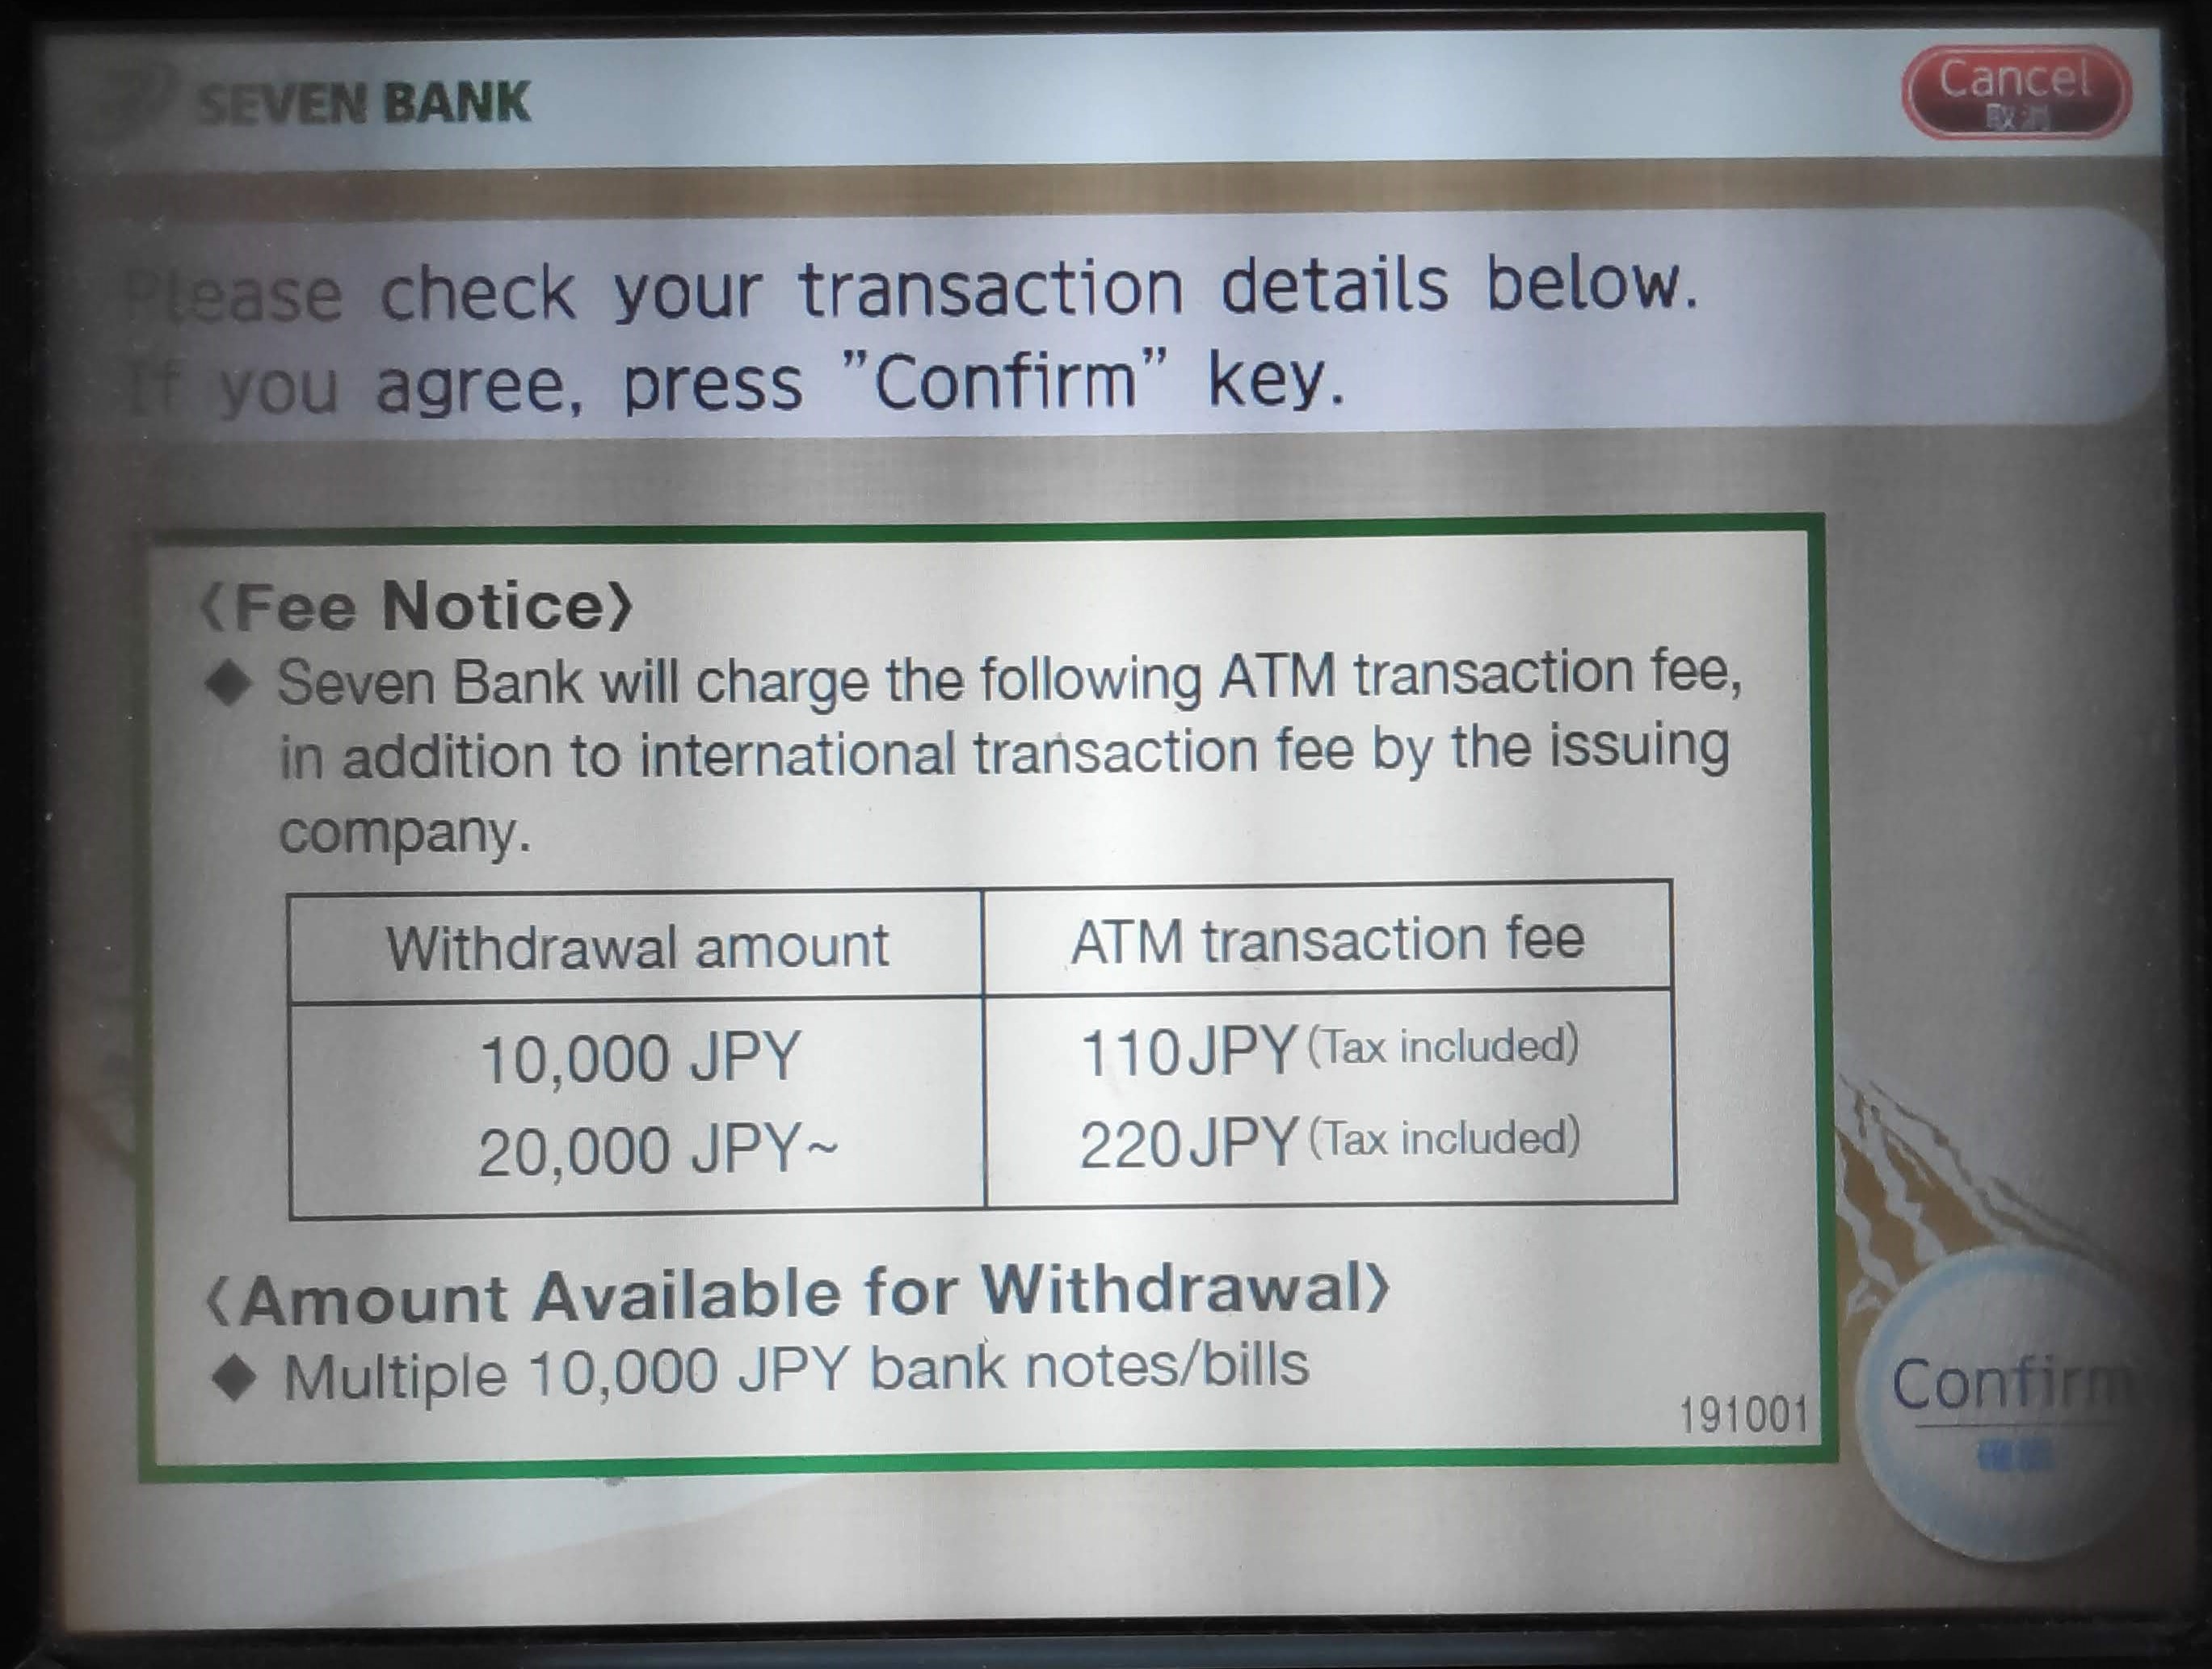 Seven Bank will charge the following ATM transaction fee, in addition to international transaction fee by the issuing company. Withdrawal amount / ATM Transaction Fee 10,000 JPY / 110 JPY 20,000 JPY / 220 JPY